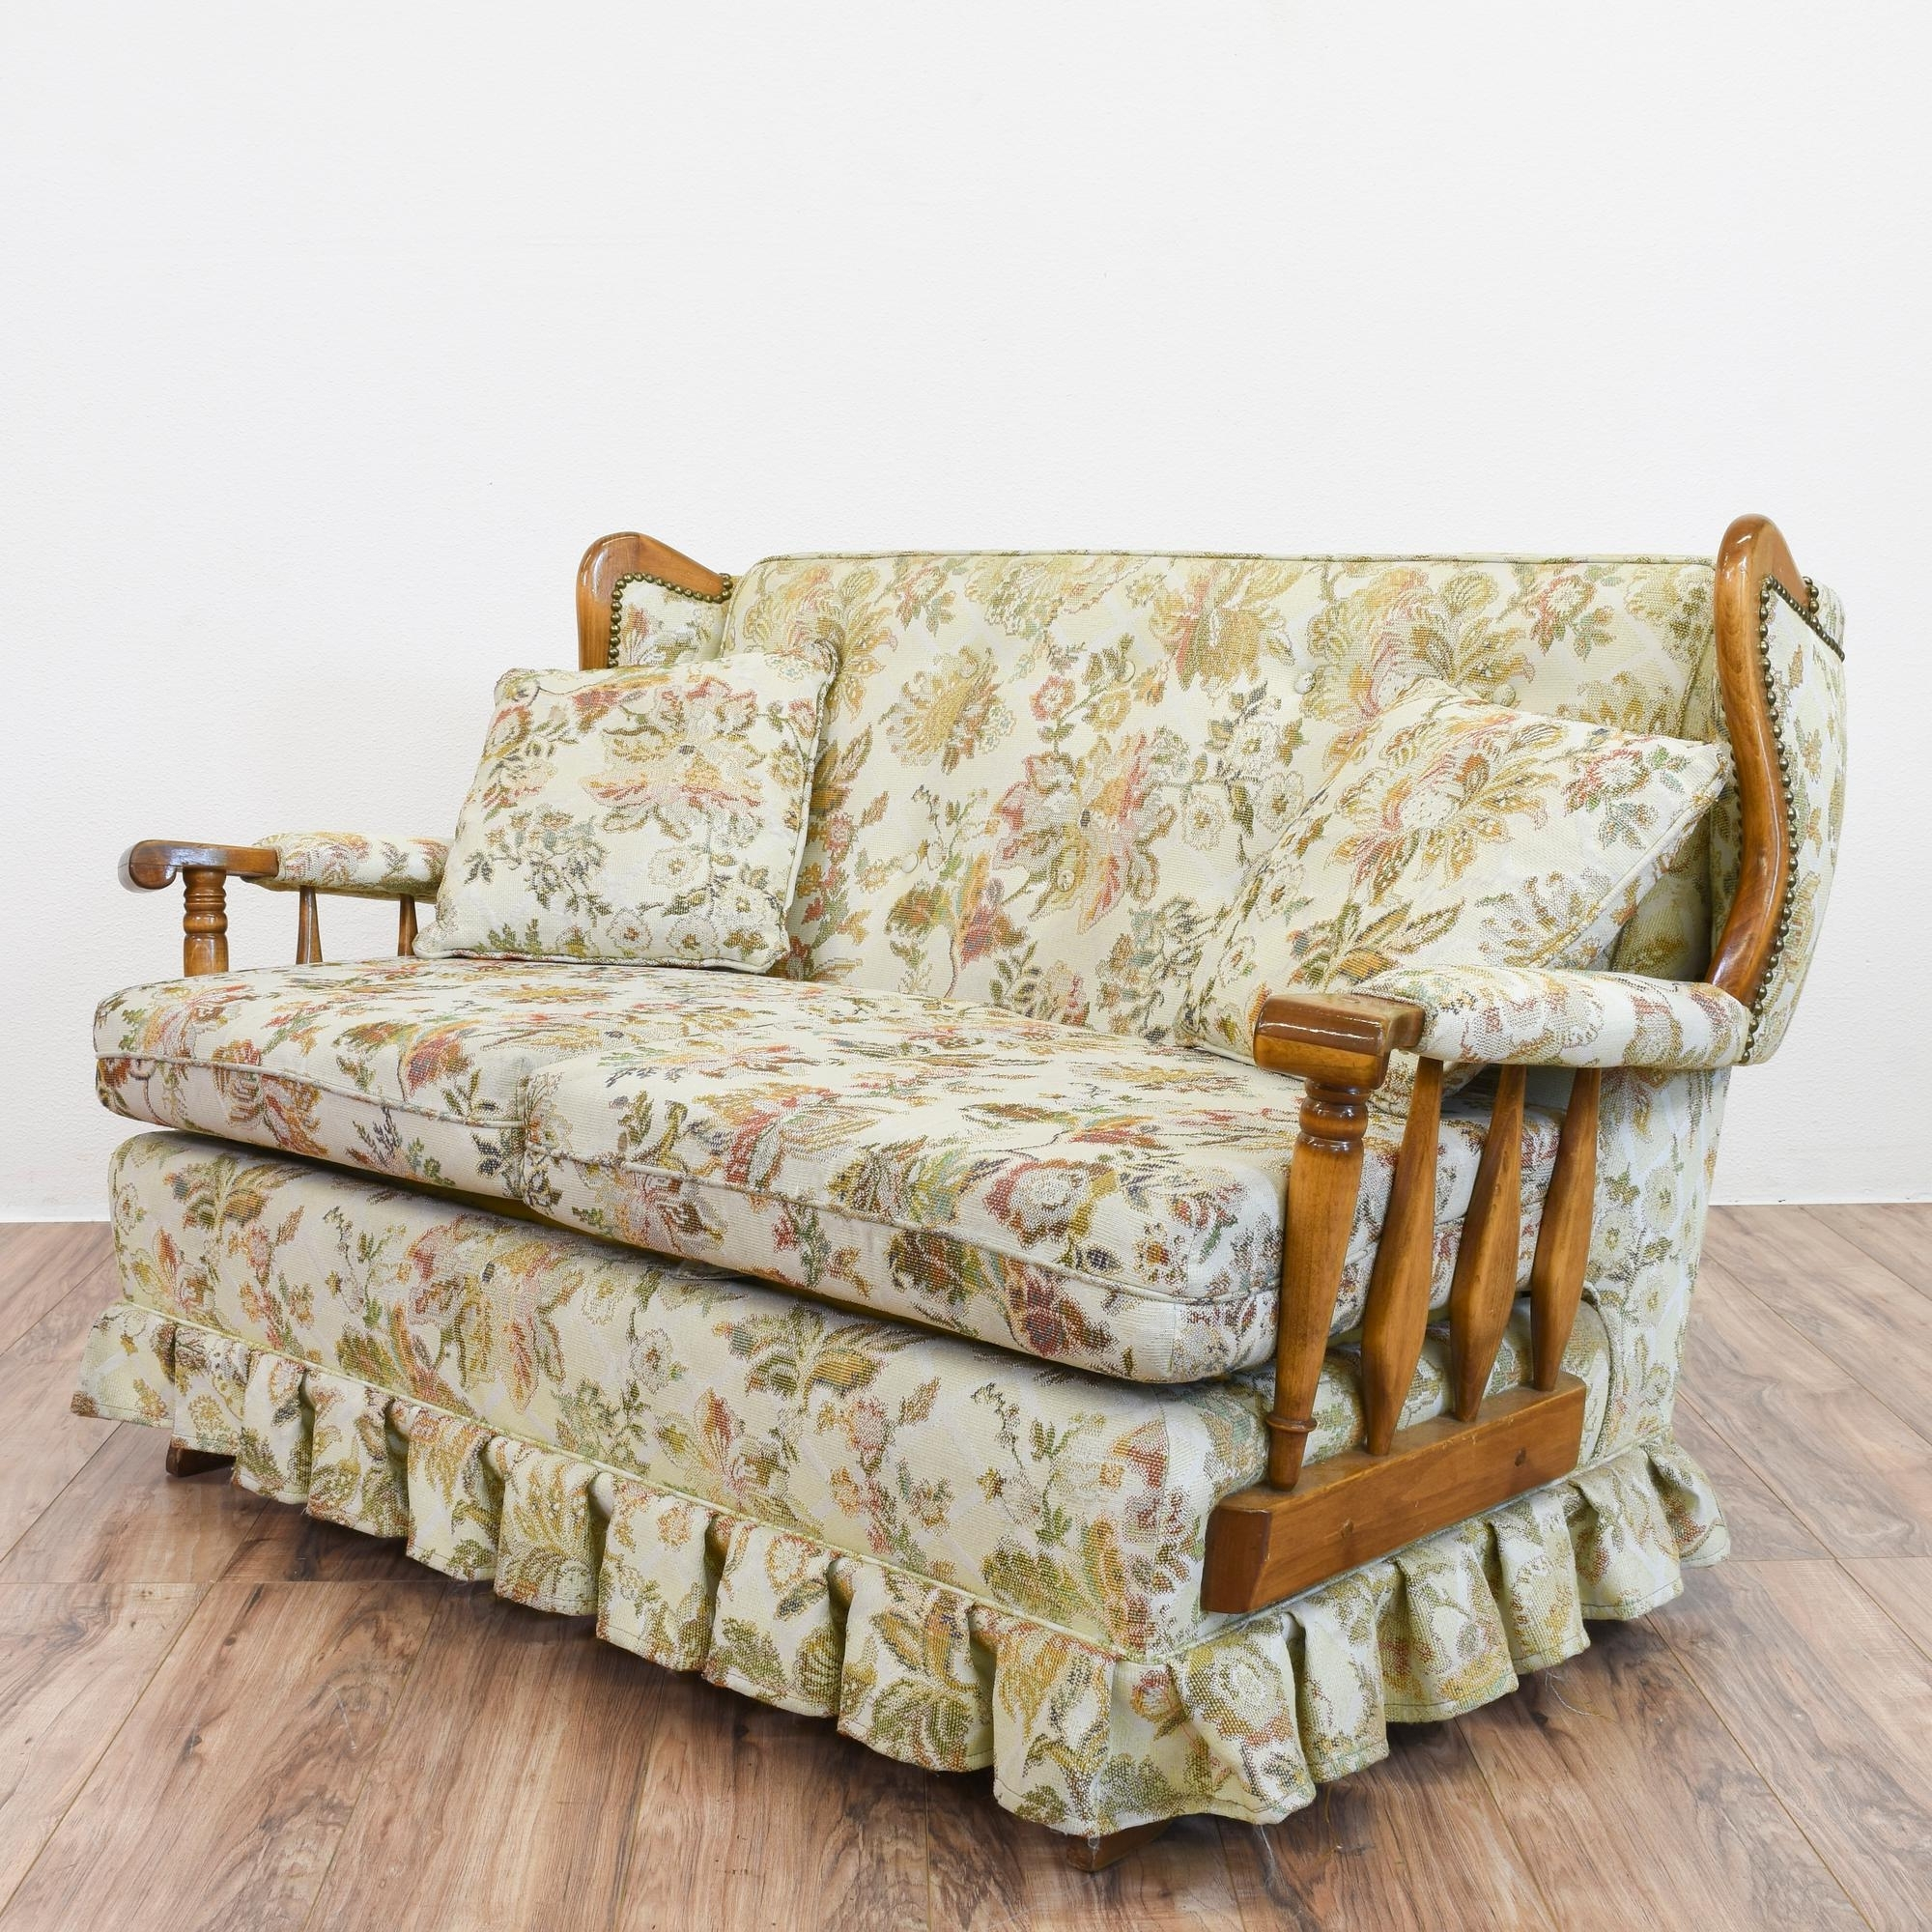 Recent This Rocking Sofa Is Featured In A Solid Wood With A Glossy Maple Intended For Yellow Chintz Sofas (View 13 of 20)